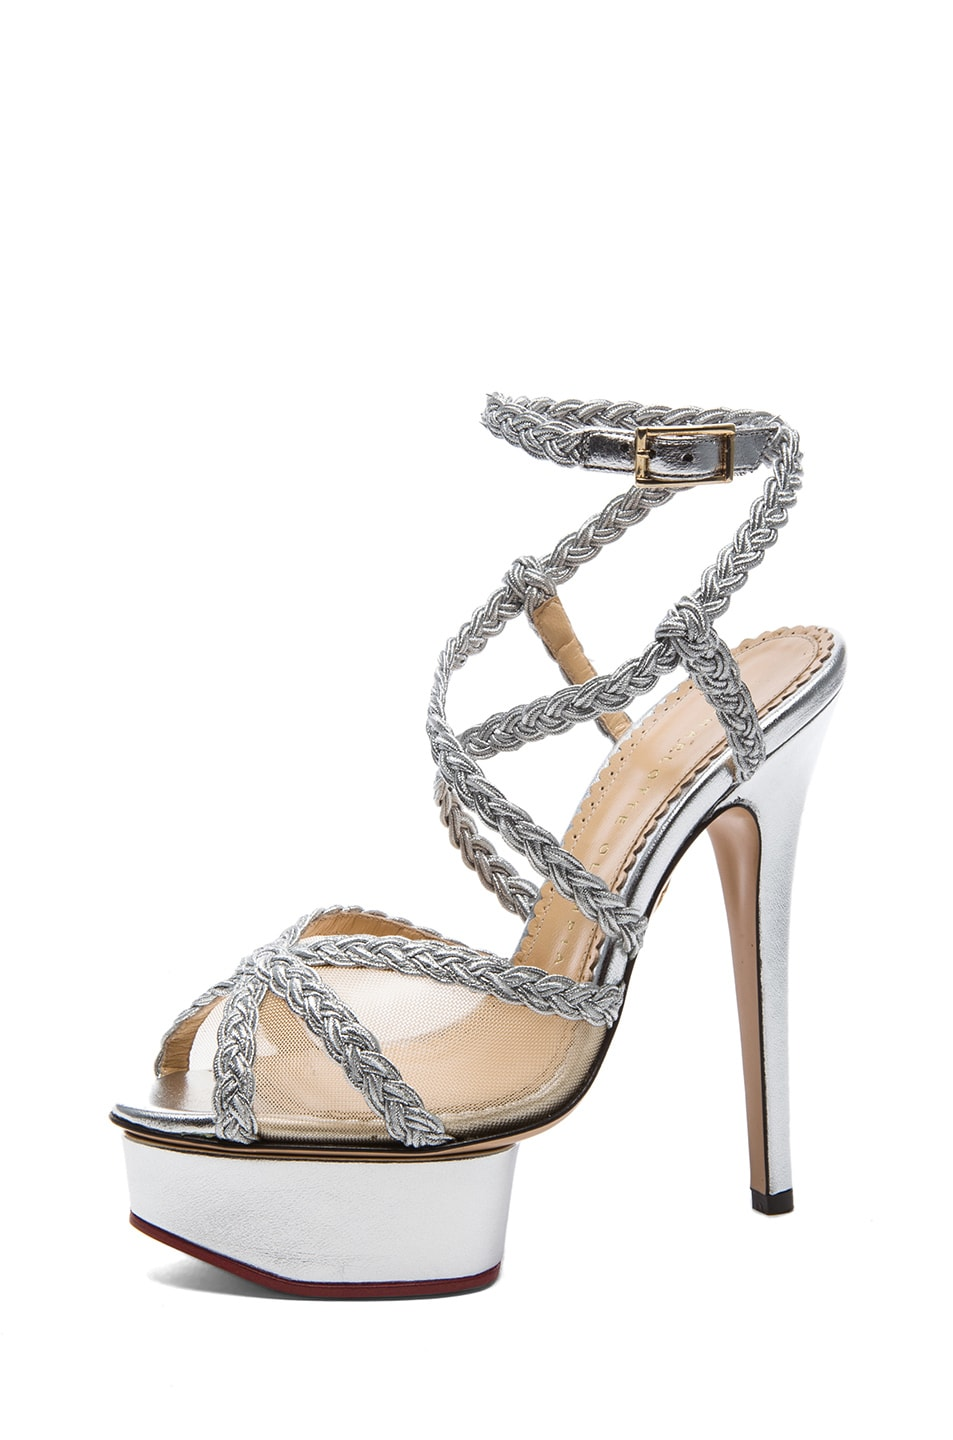 Image 2 of Charlotte Olympia Isadora Metallic Nappa Leather Heel in Silver